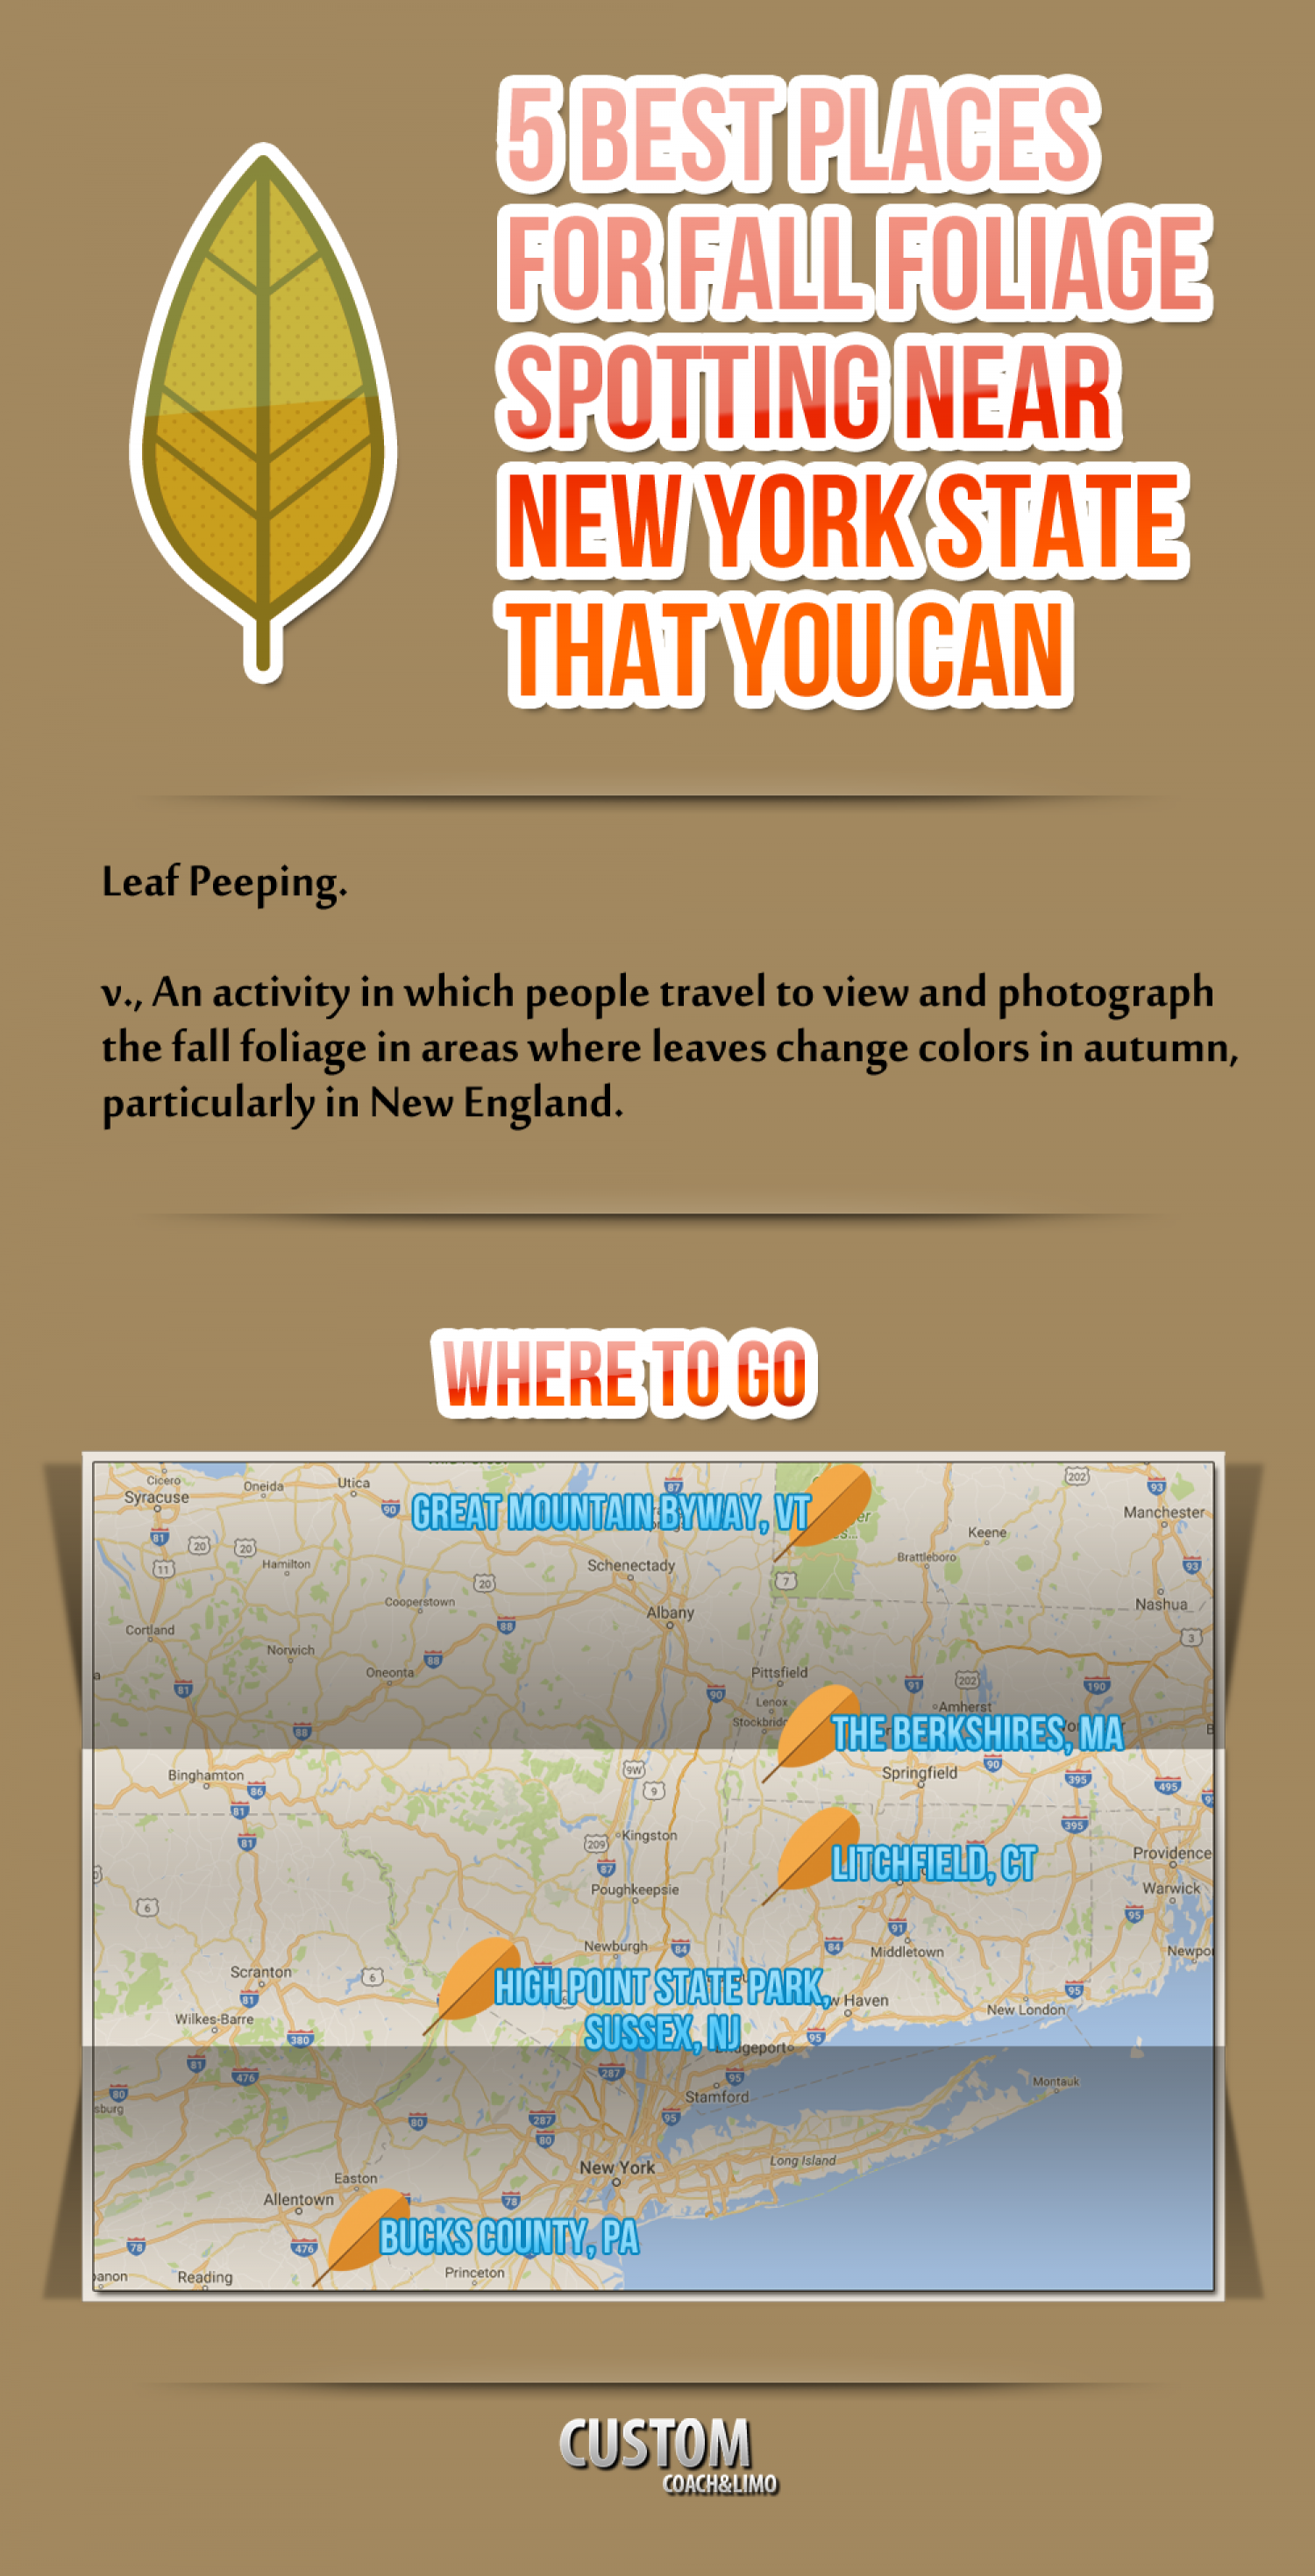 5 Best Places for Fall Foliage Spotting Near New York State That You Can Visit with a Minibus in NYC Infographic